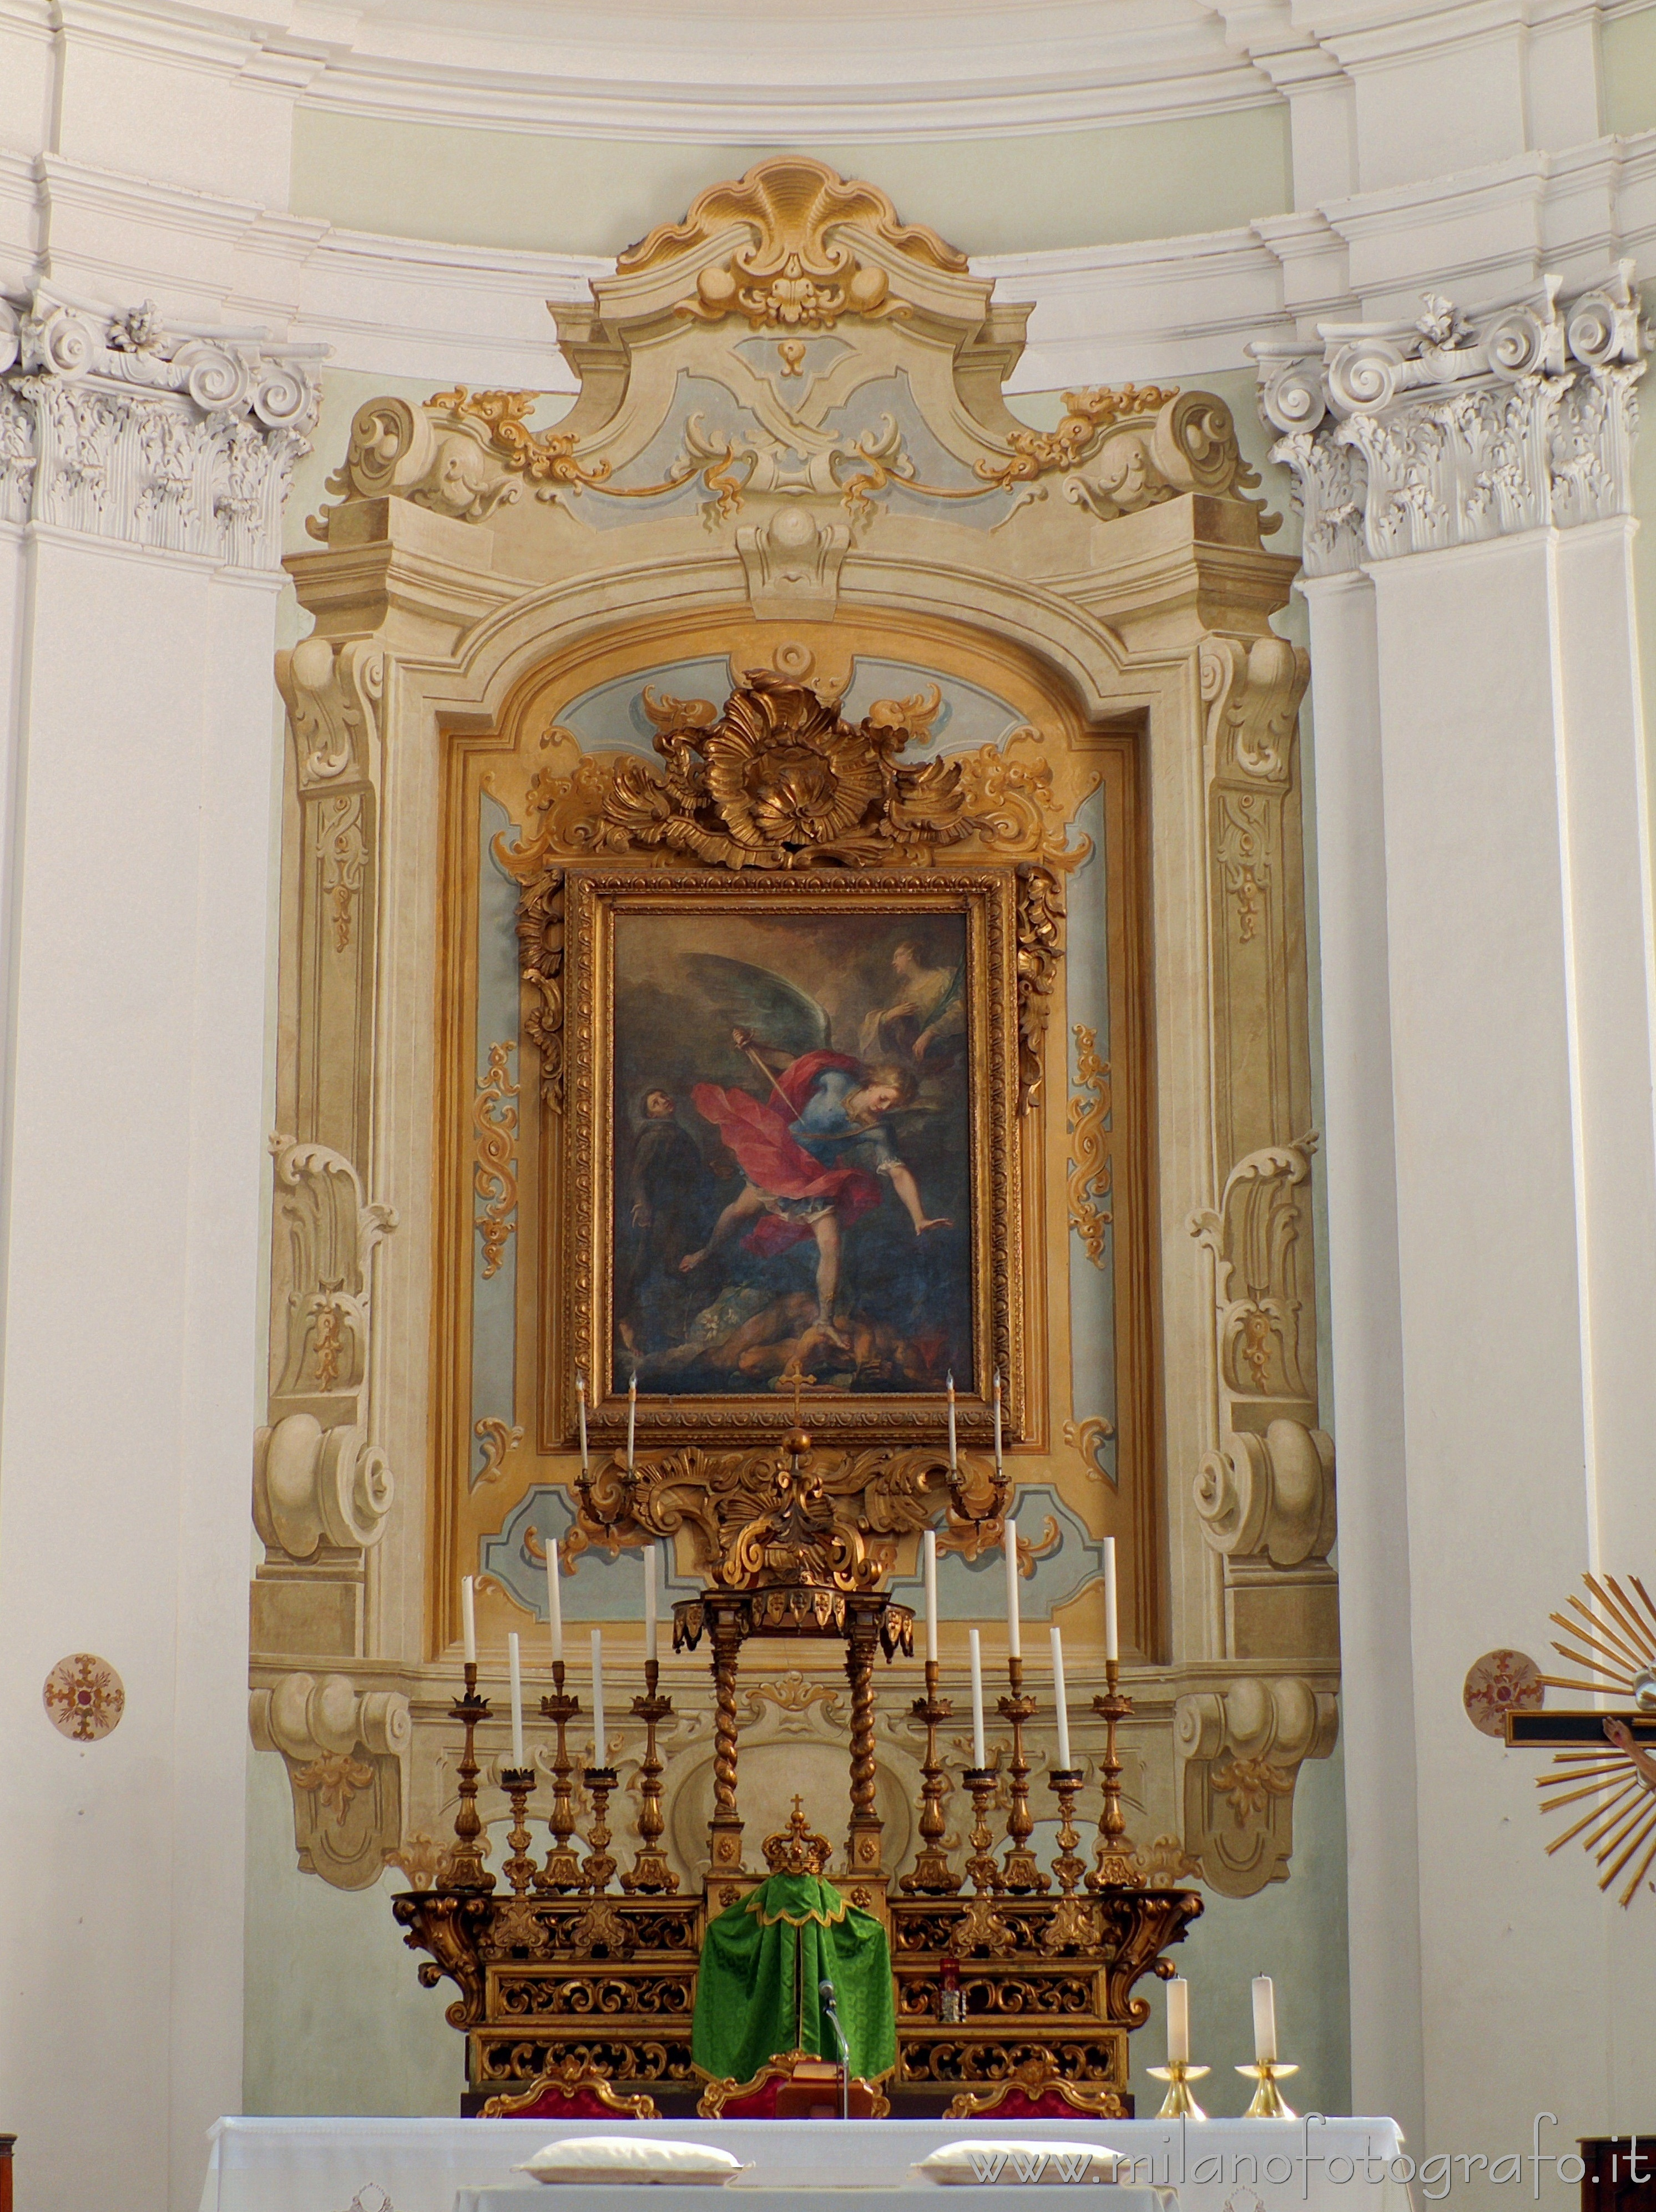 Santarcangelo di Romagna (Rimini, Italy): Main altar of the Church of the Blessed Virgin of the Rosary - Santarcangelo di Romagna (Rimini, Italy)